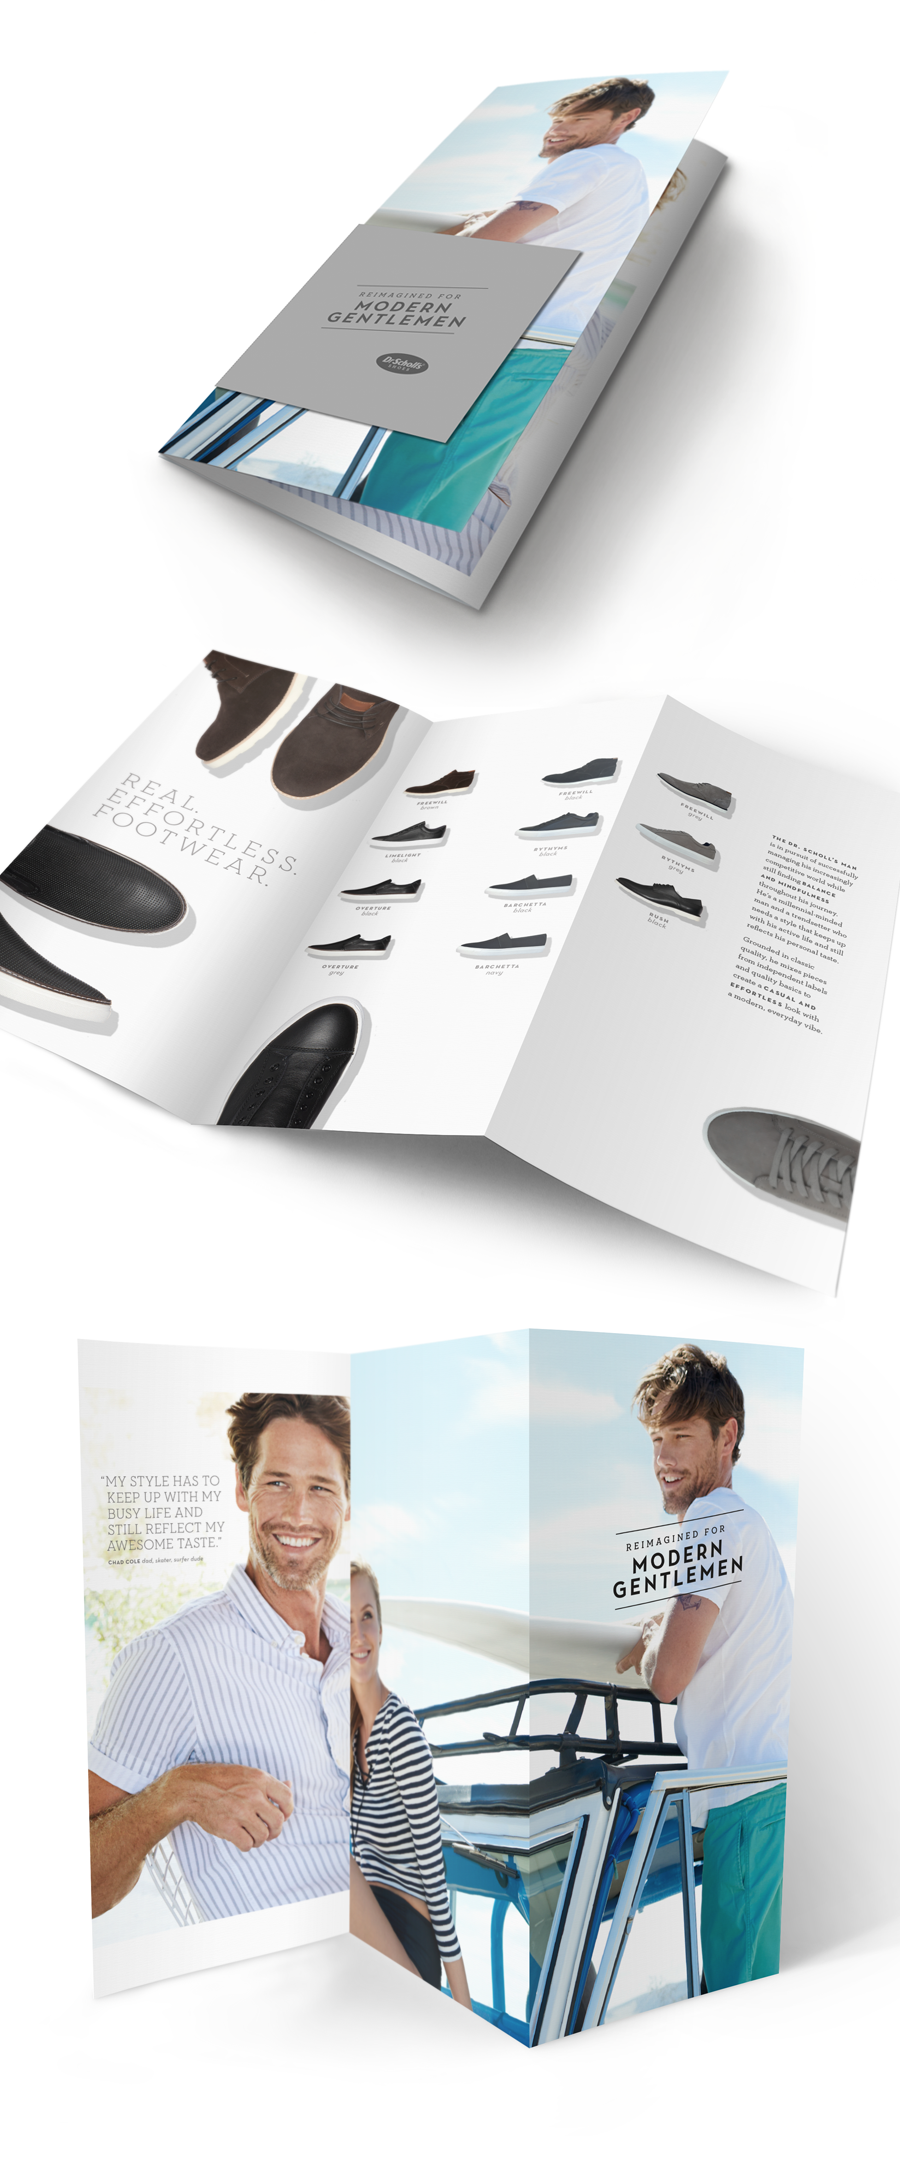 Dr. Scholl's Men's launch brochure. Art director:  Laura Coggins  | Photographer:  Anne Menke